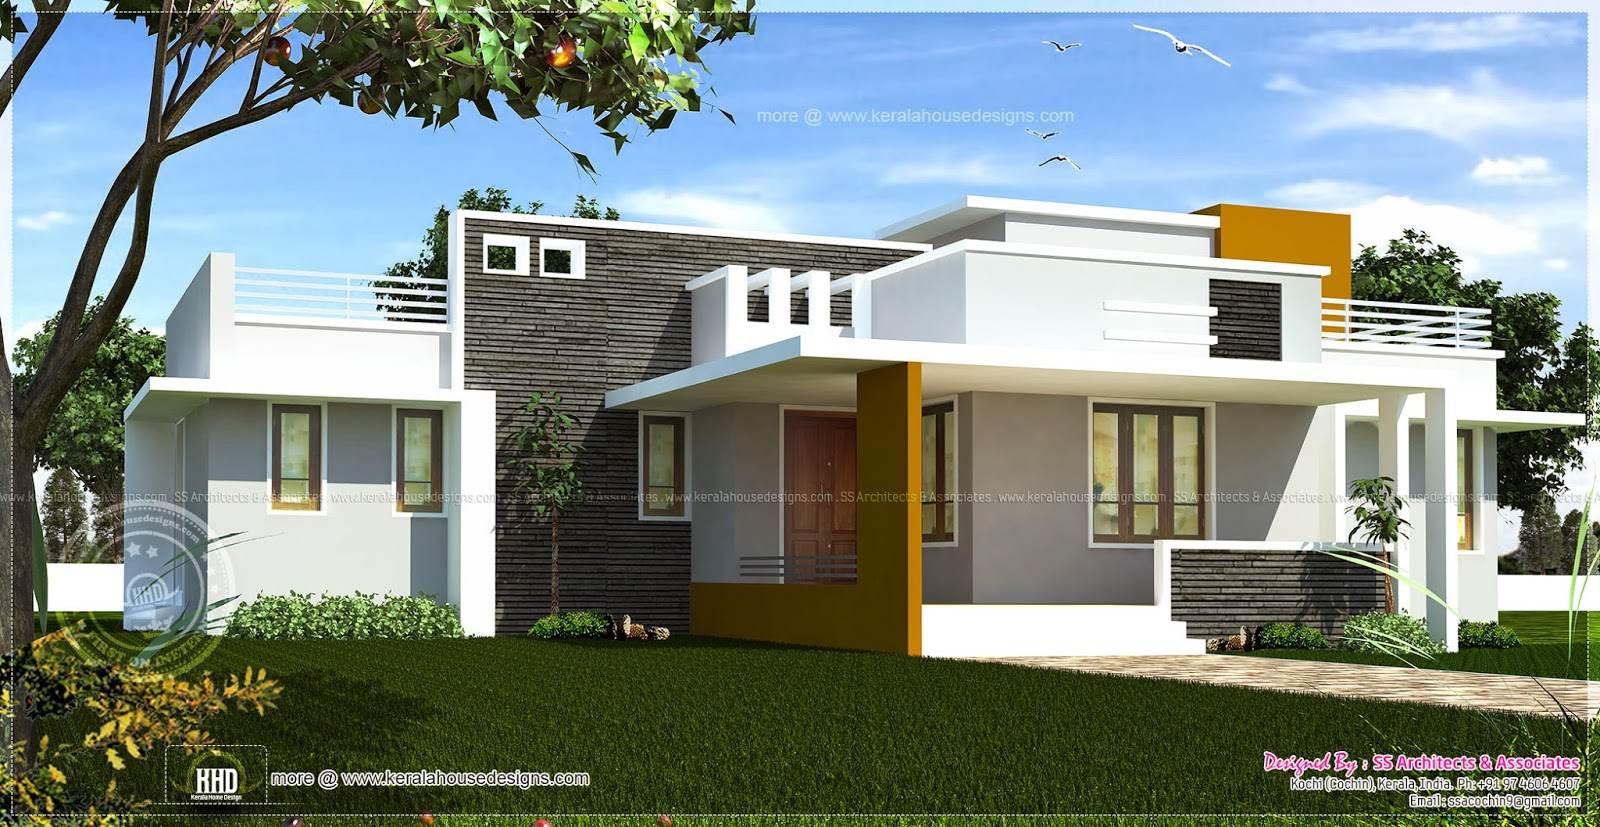 Single floor contemporary house design | Indian House Plans